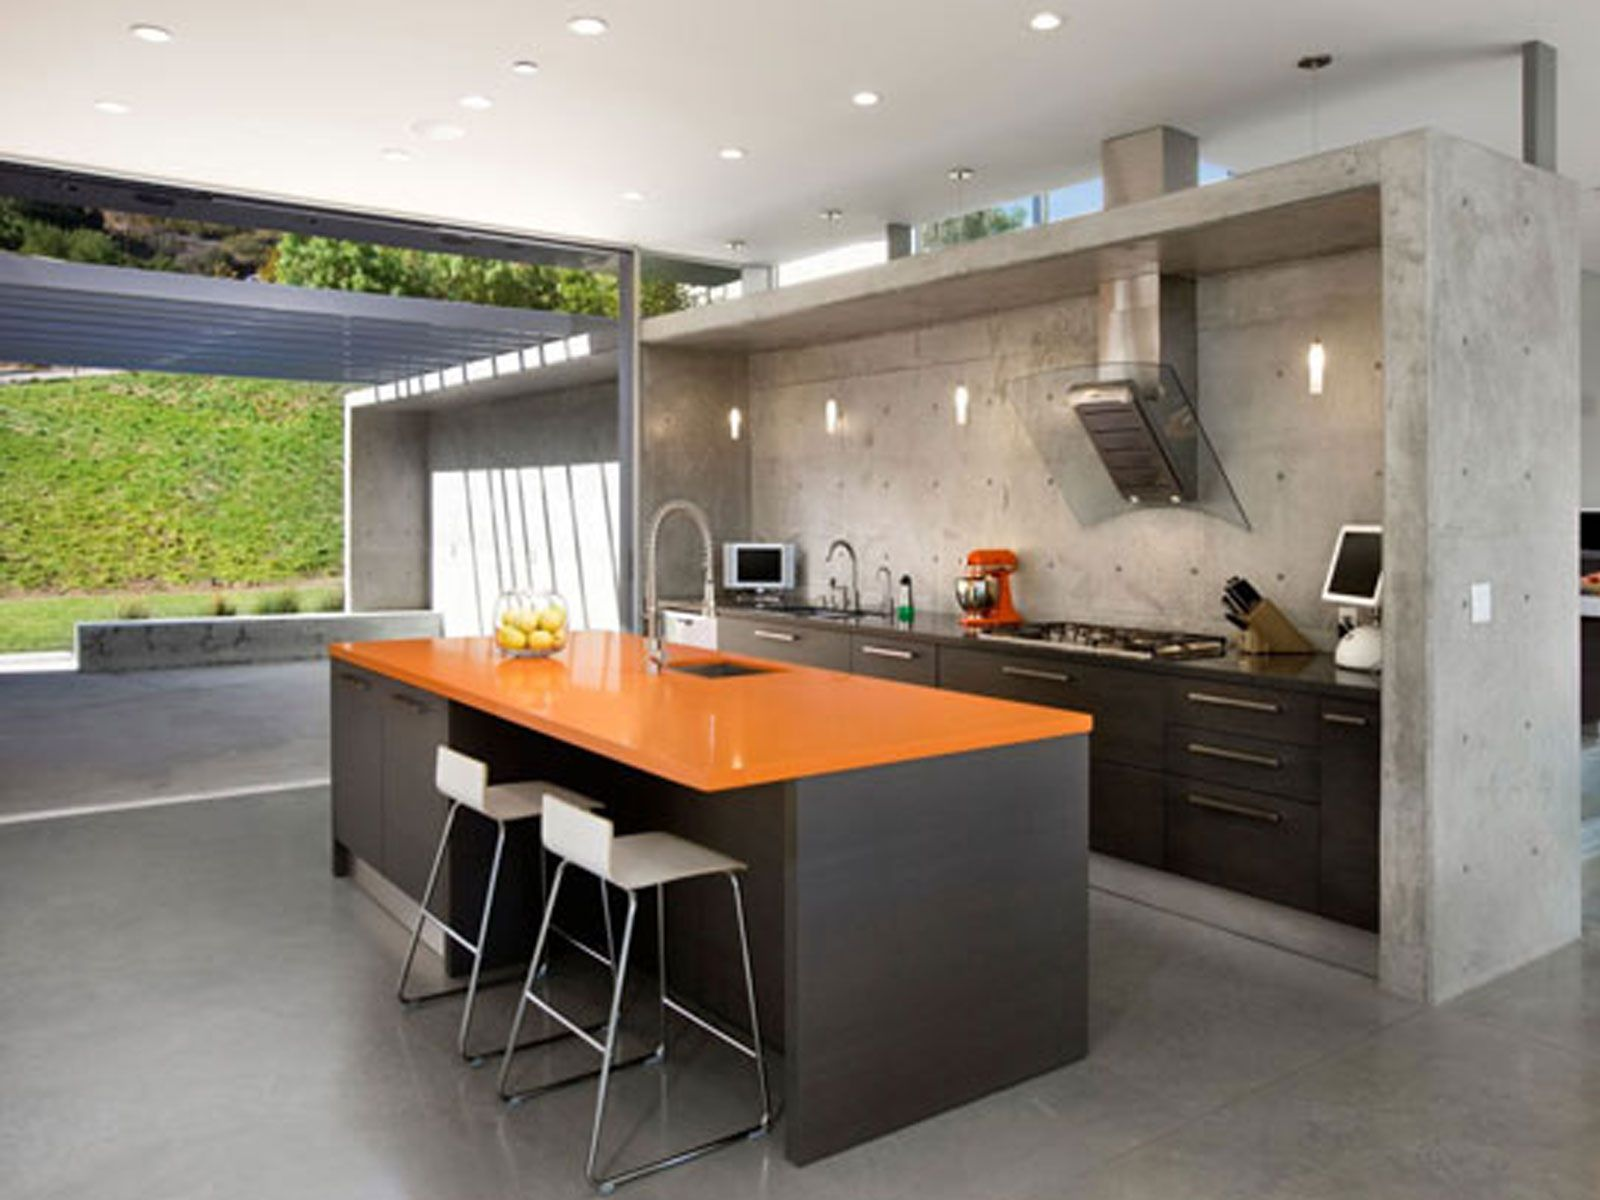 Beauty Your Room Interior Design With Modern Partition Decoration :  Stunning Kitchen Design With Stone Wall Partition Ideas And Black Orange  Kitchen Island ...